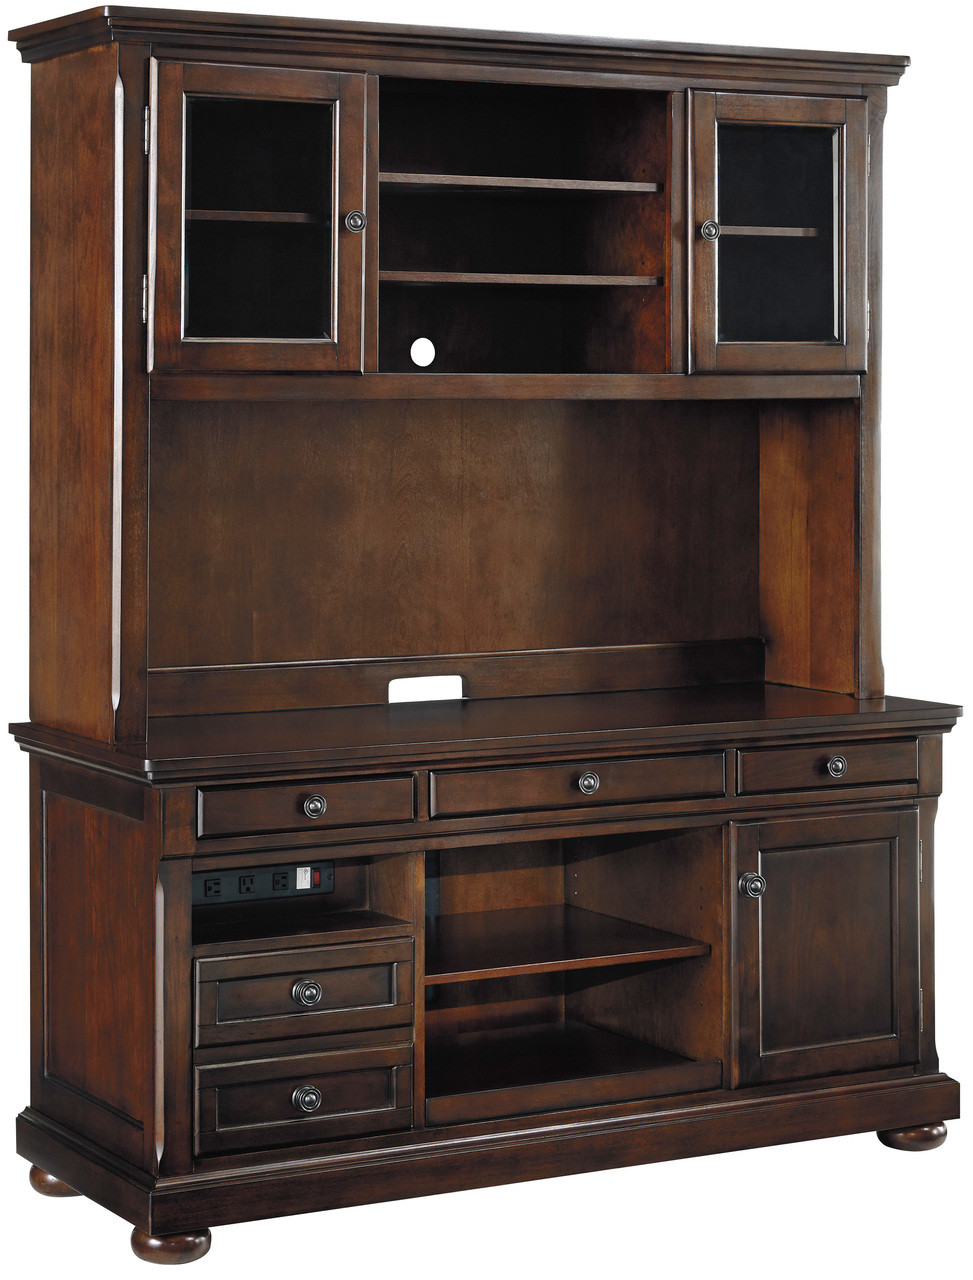 Kirkland Brown Credenza Hutch Cb Furniture